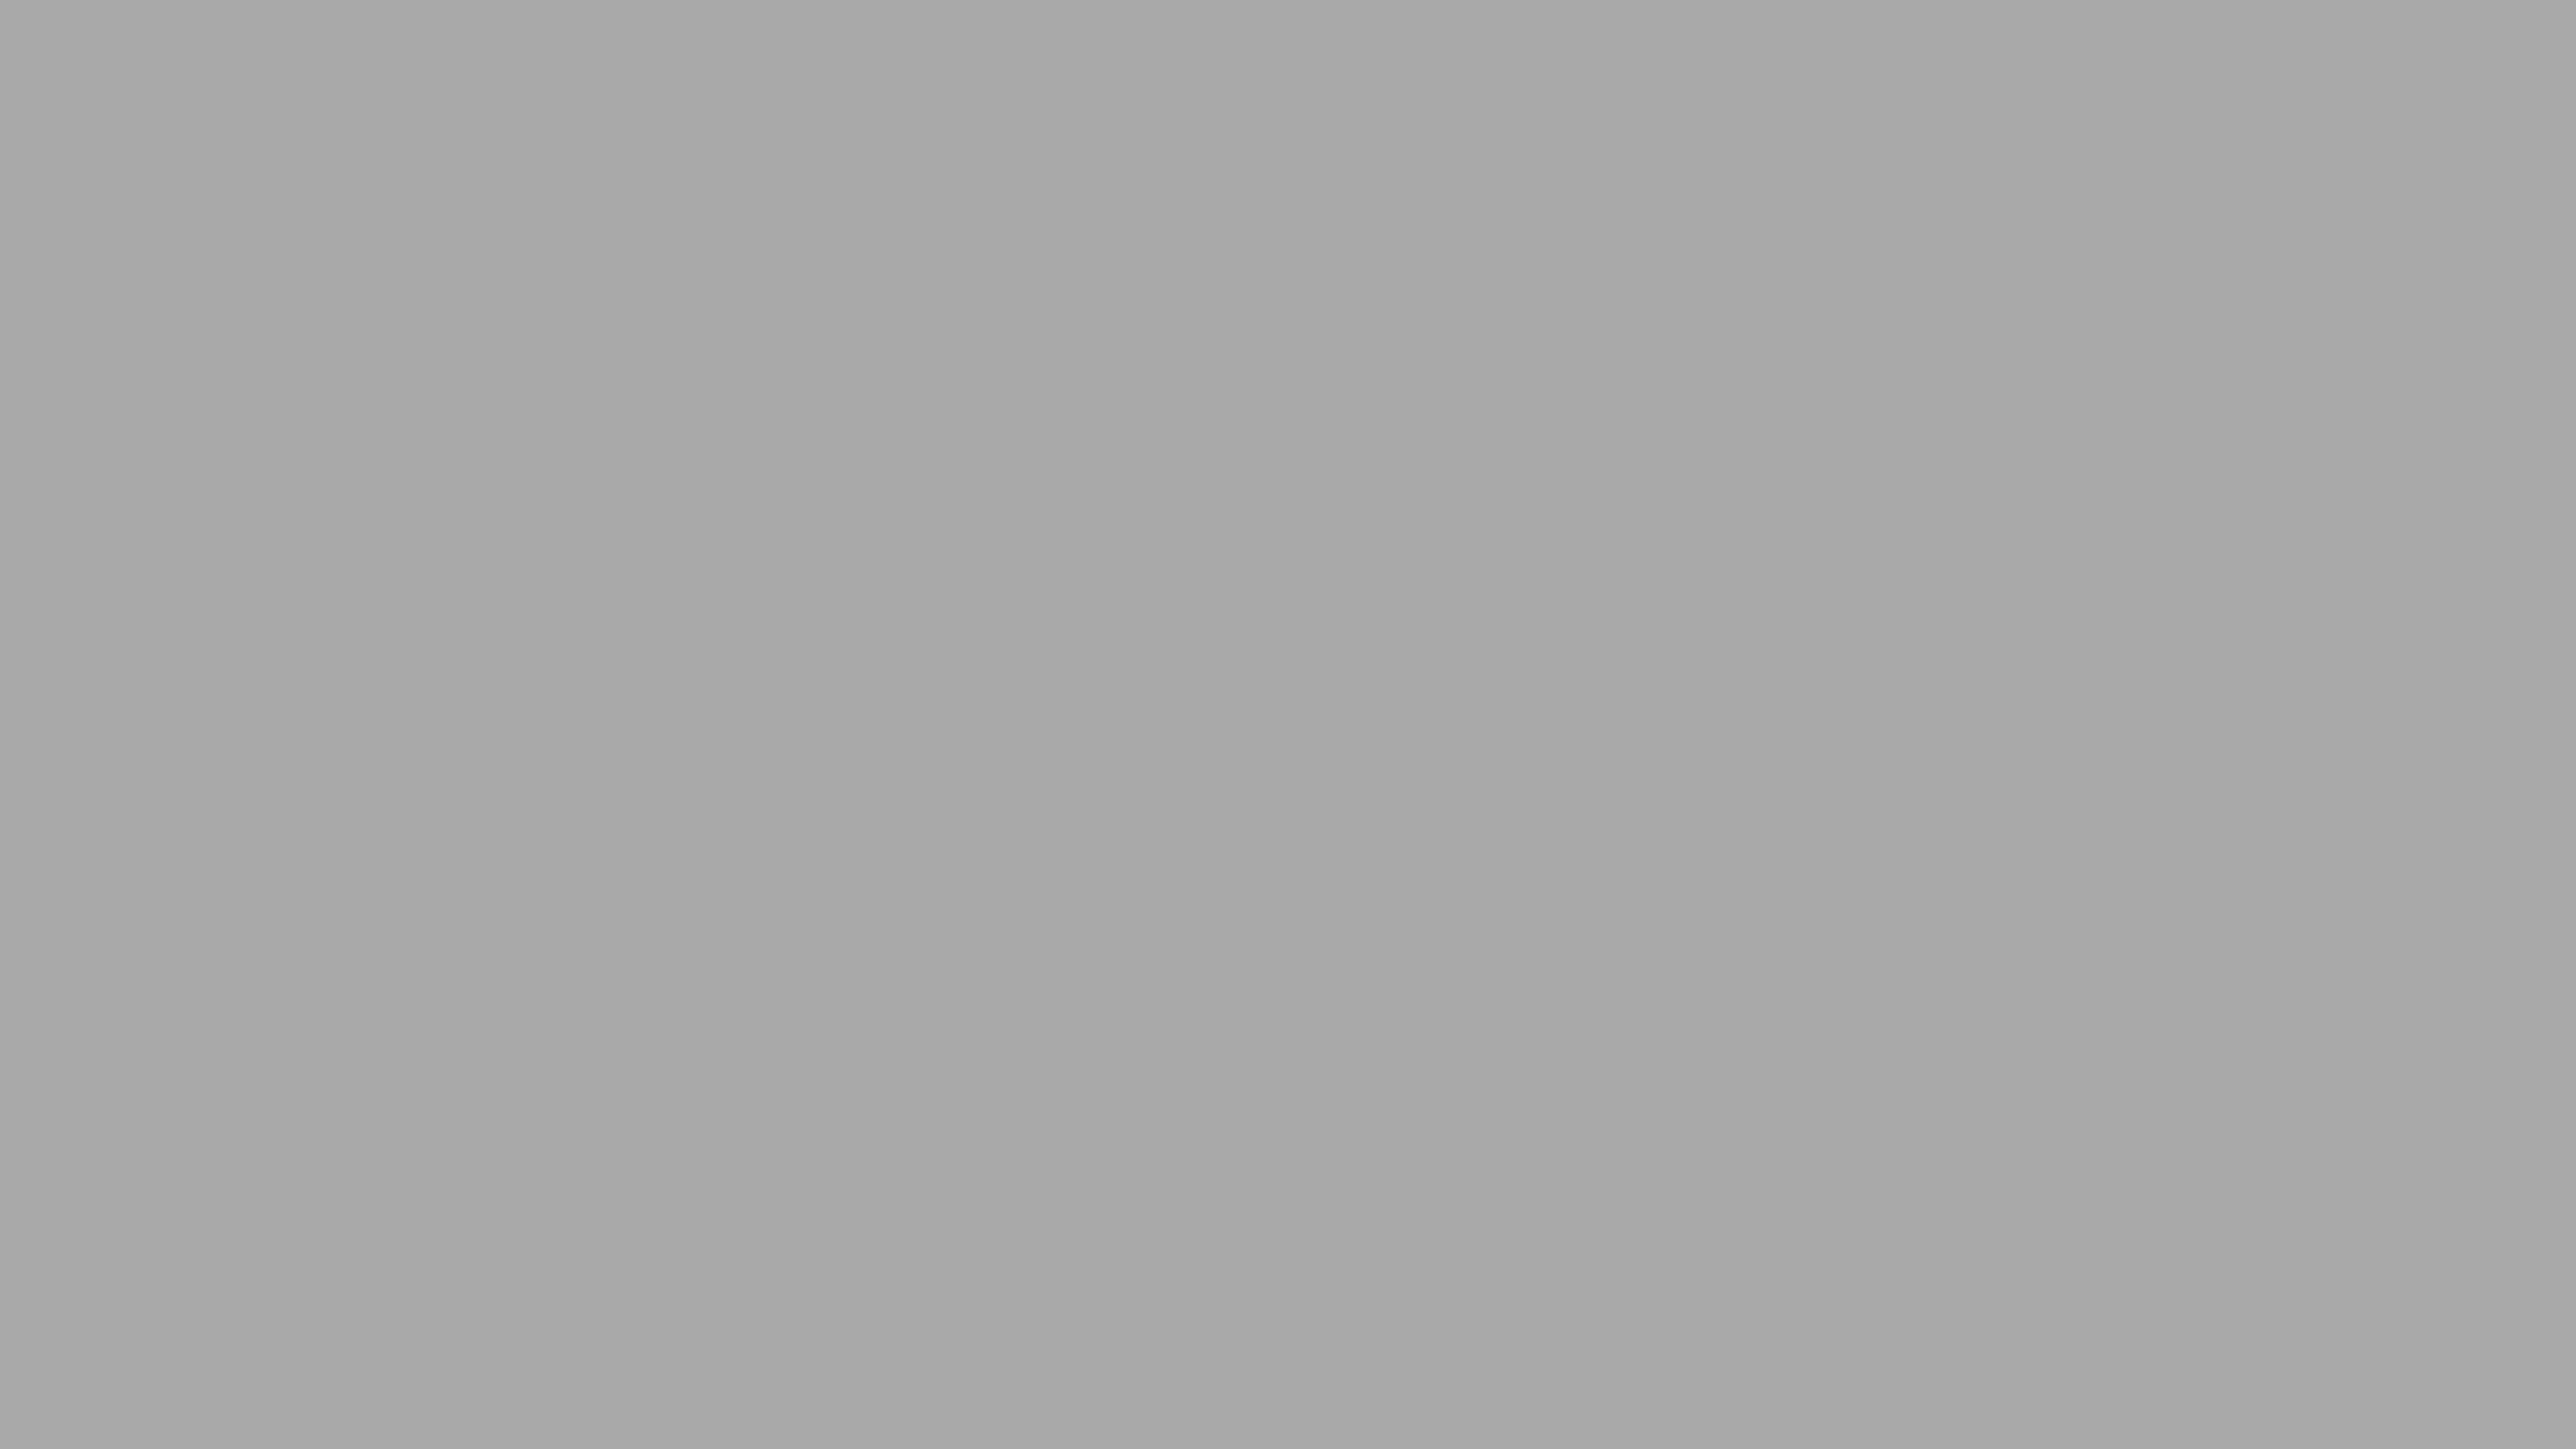 5120x2880 Dark Gray Solid Color Background